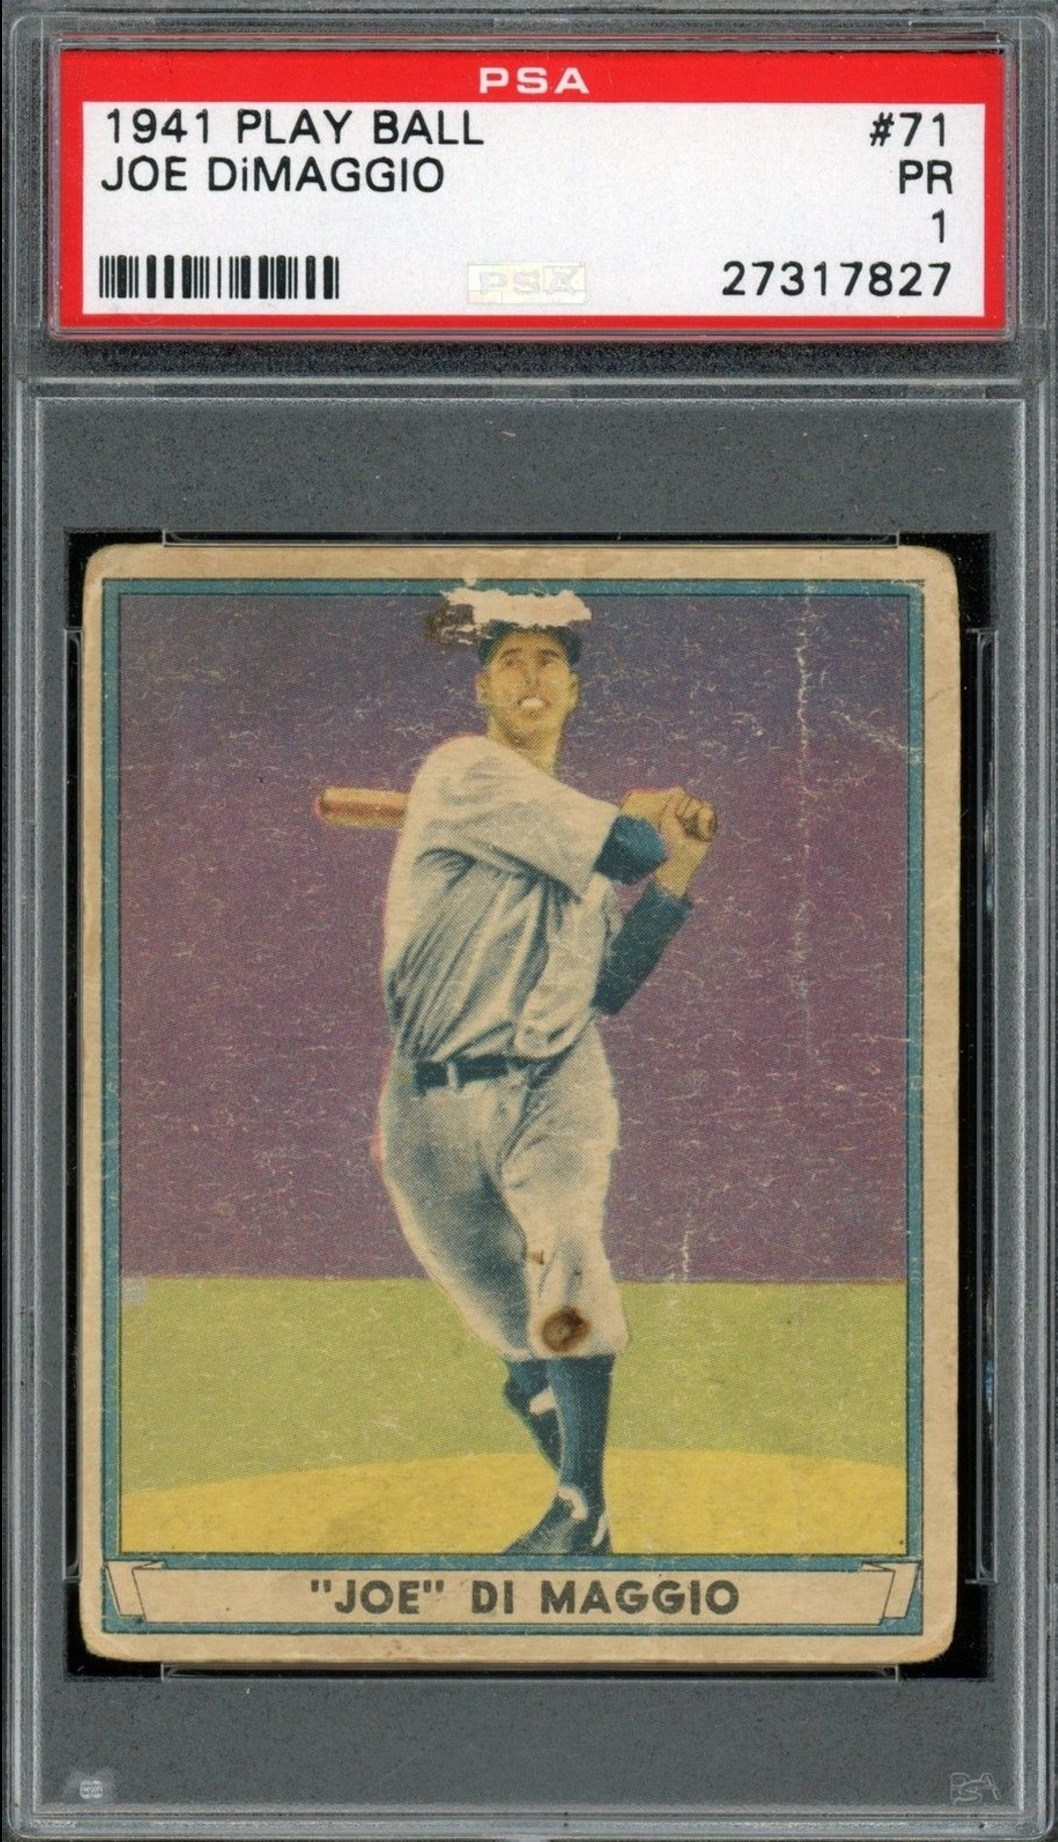 1941 Play Ball #41 Joe Dimaggio Baseball Card Graded PSA 1 Poor Condition